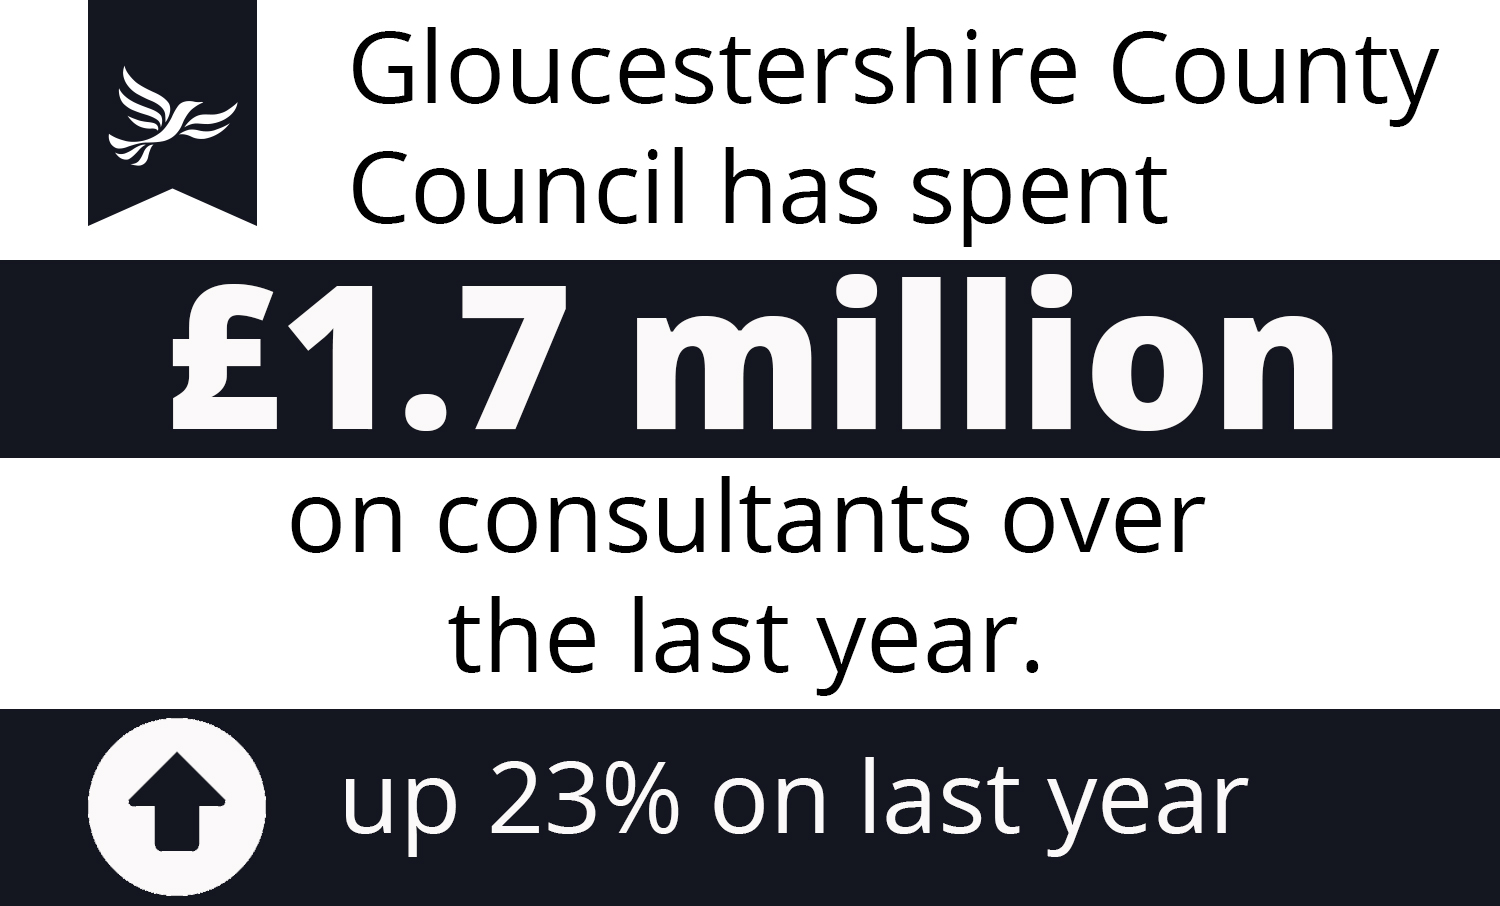 The County Council just spent £1.7 million on consultants and it's gone up by a quarter